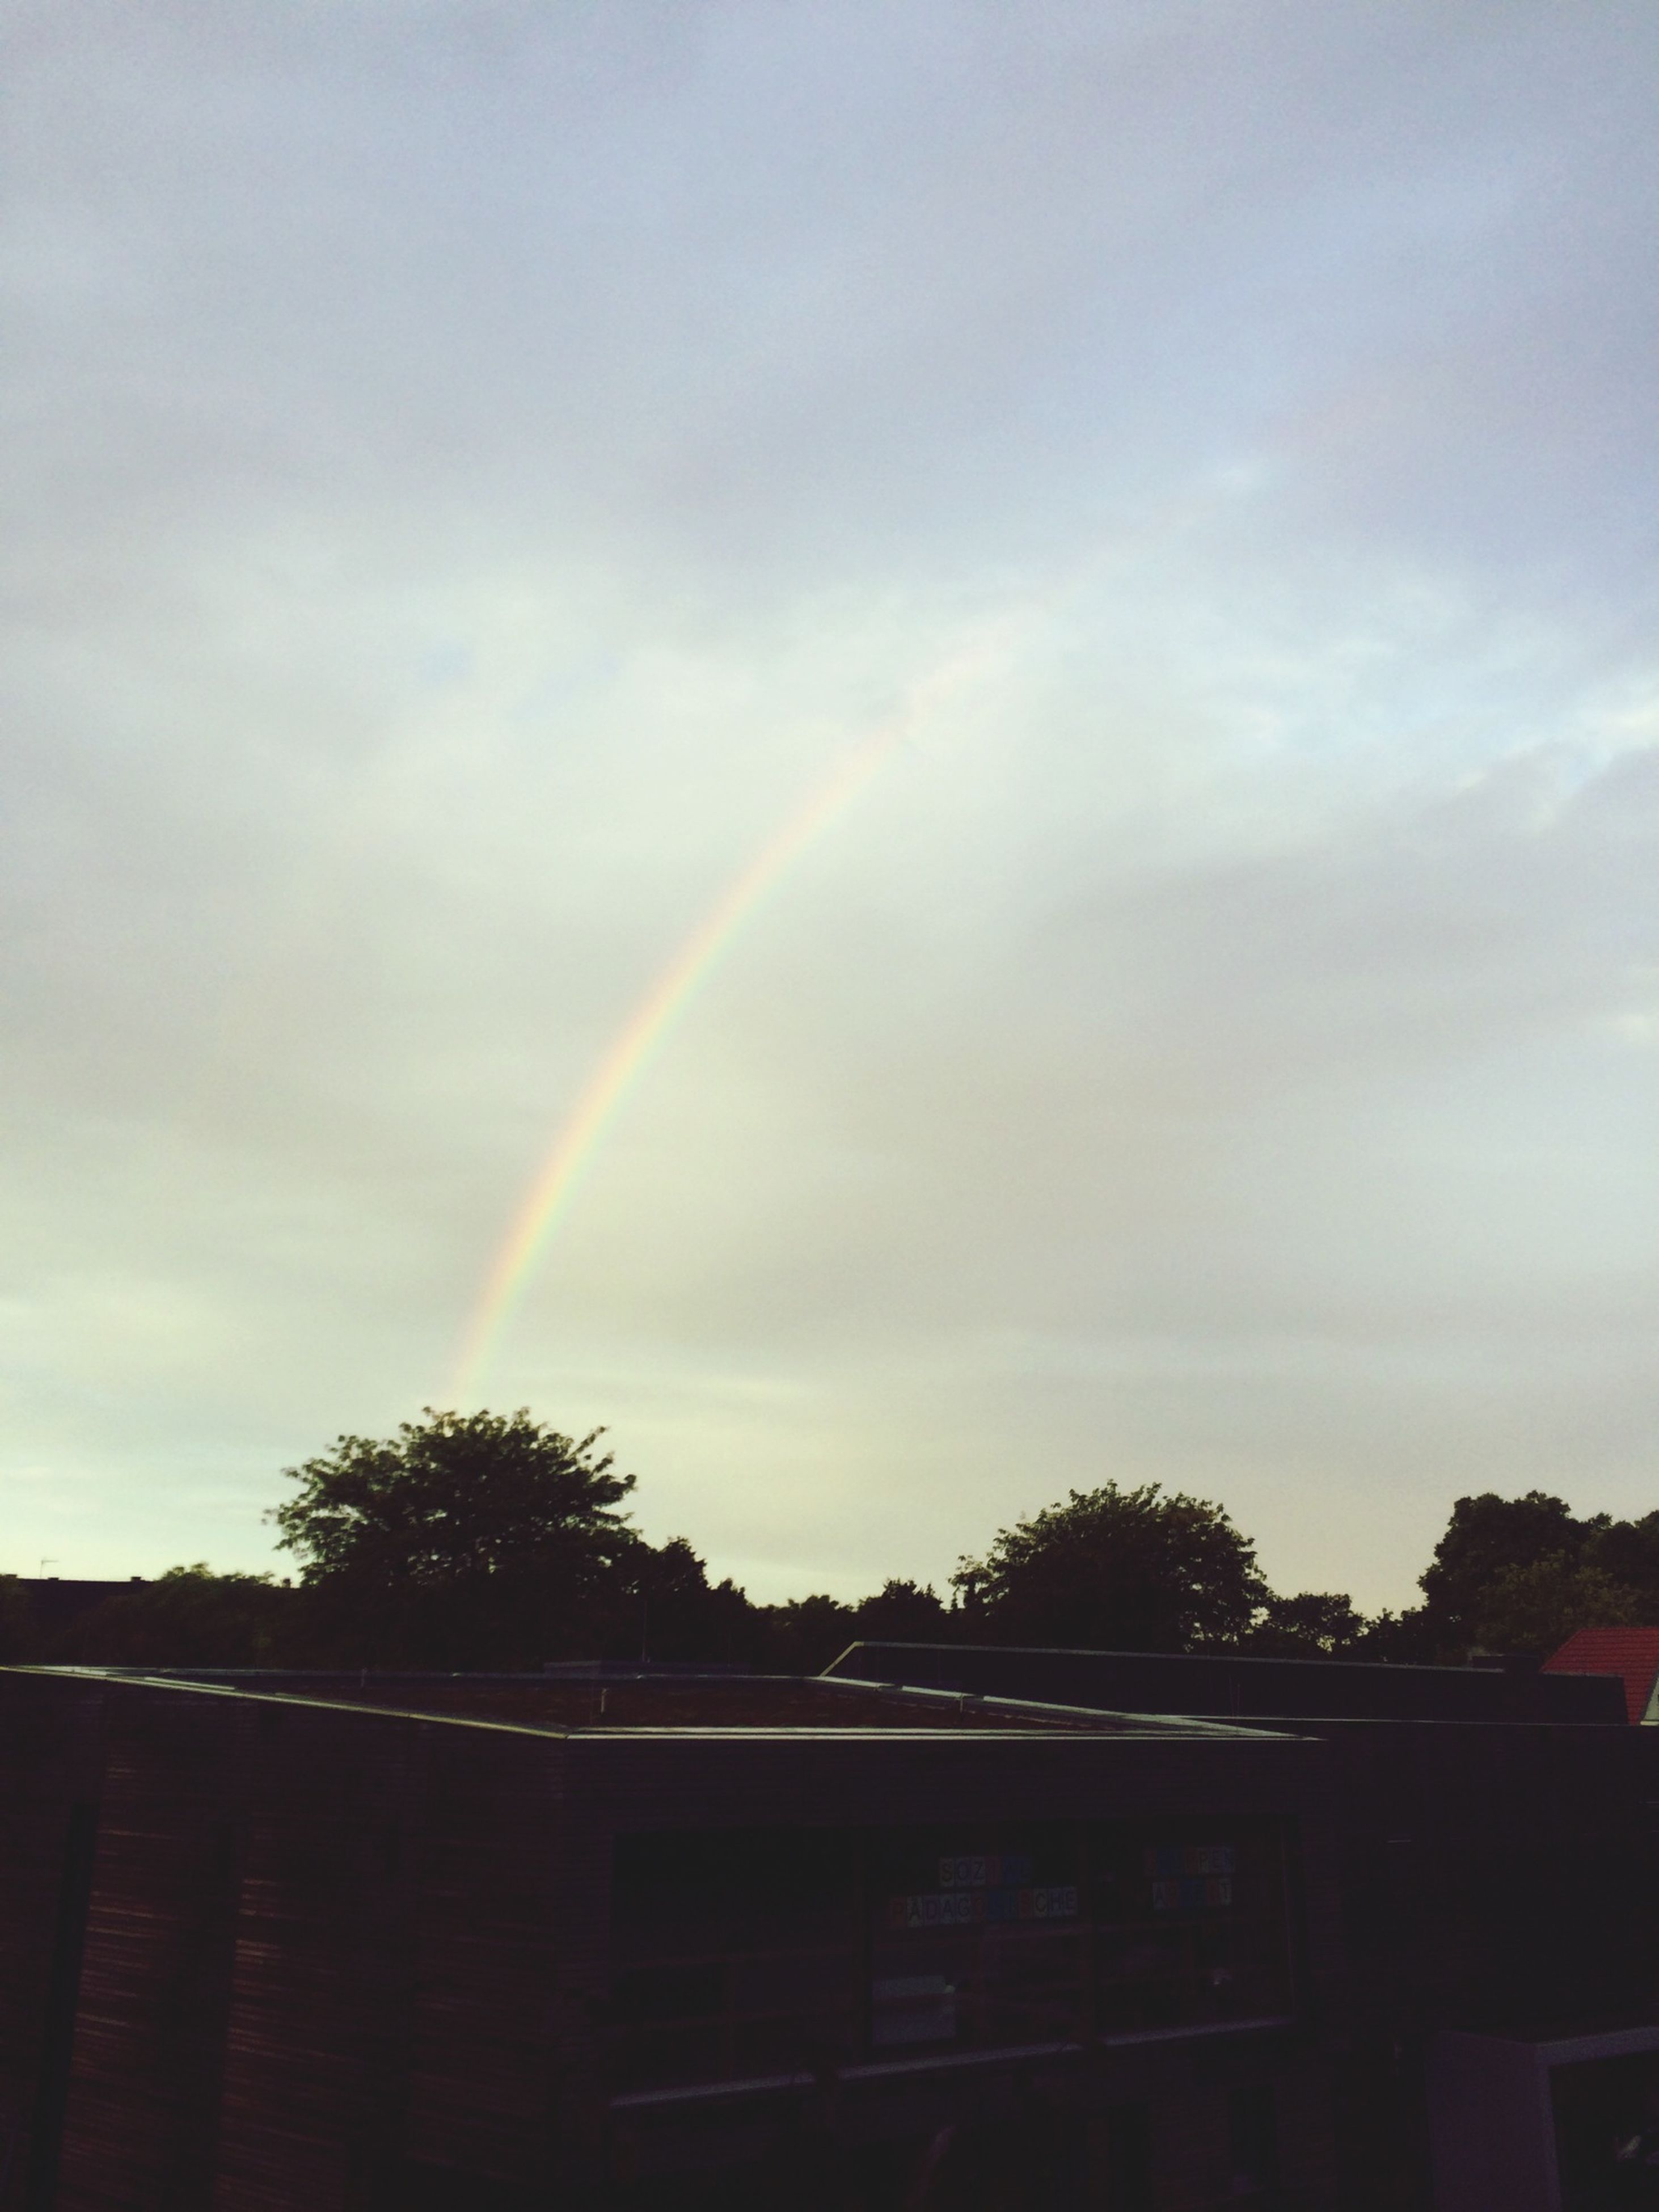 rainbow, sky, tree, cloud - sky, beauty in nature, nature, multi colored, cloudy, scenics, low angle view, building exterior, silhouette, cloud, weather, outdoors, built structure, tranquility, sunset, dusk, growth